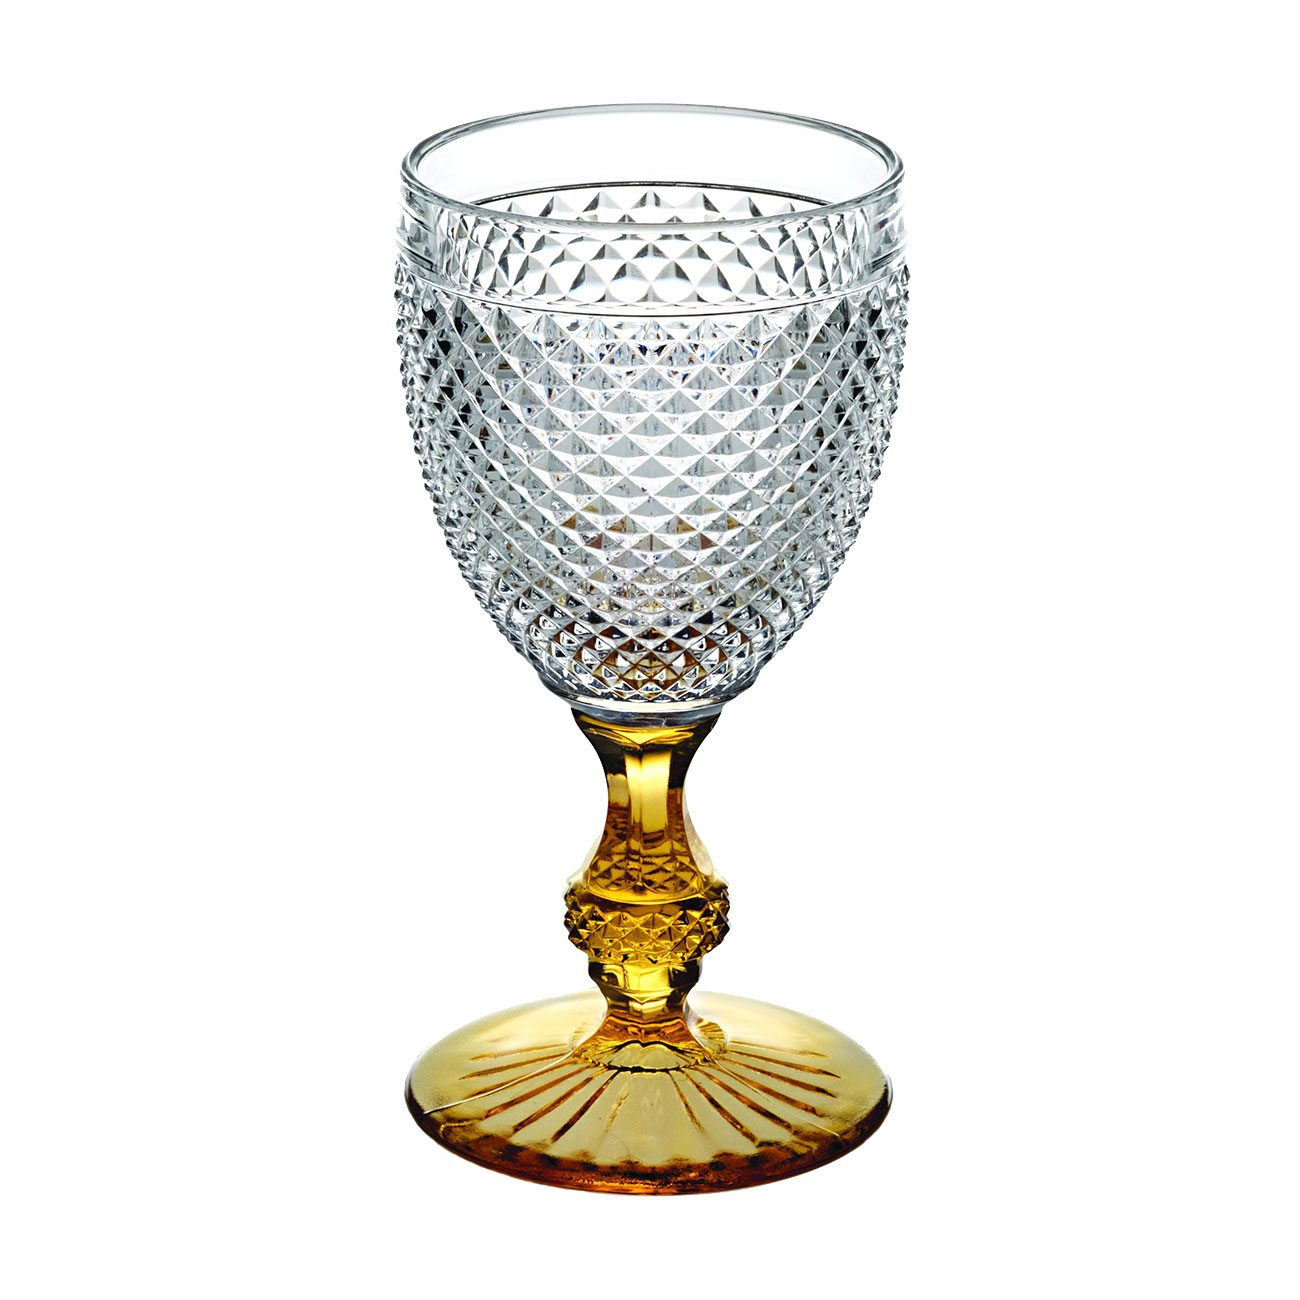 Vista Alegre Bicos Bicolor Goblet with Amber Stem